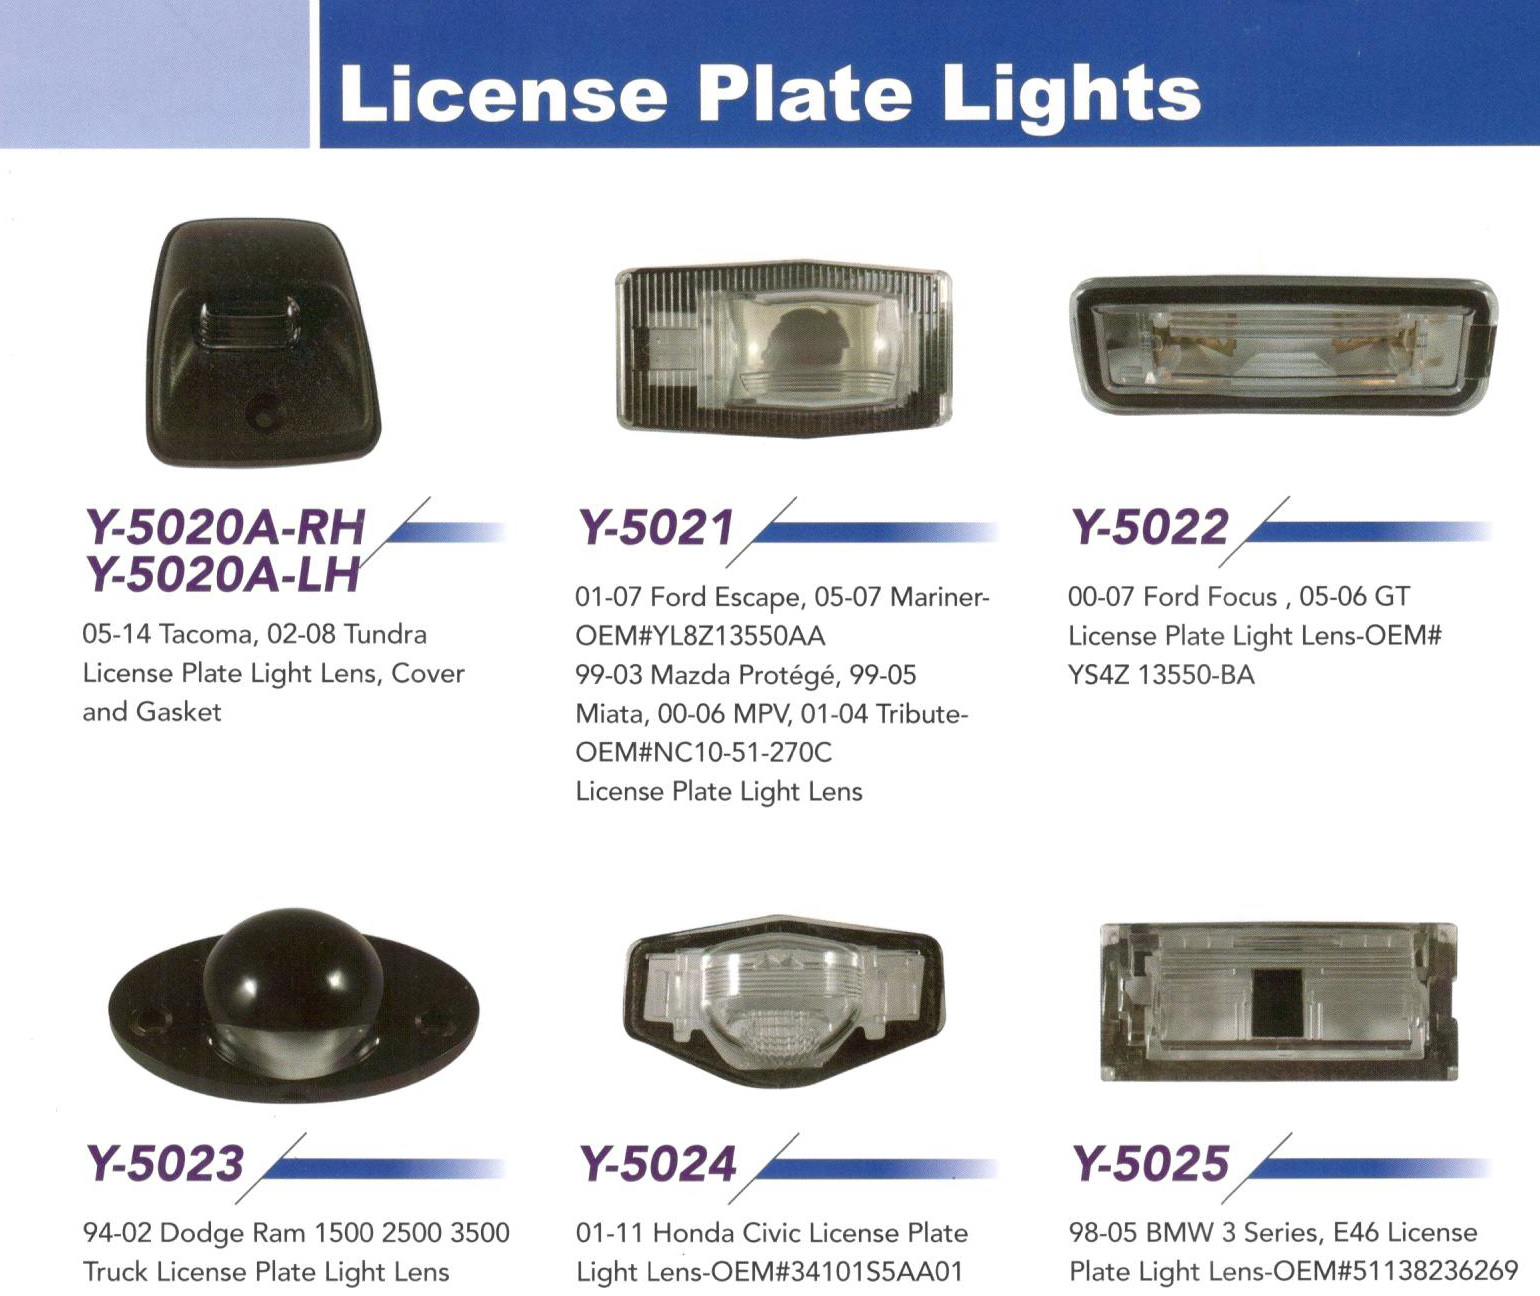 License Plate Light J Mark Technology Co Ltd